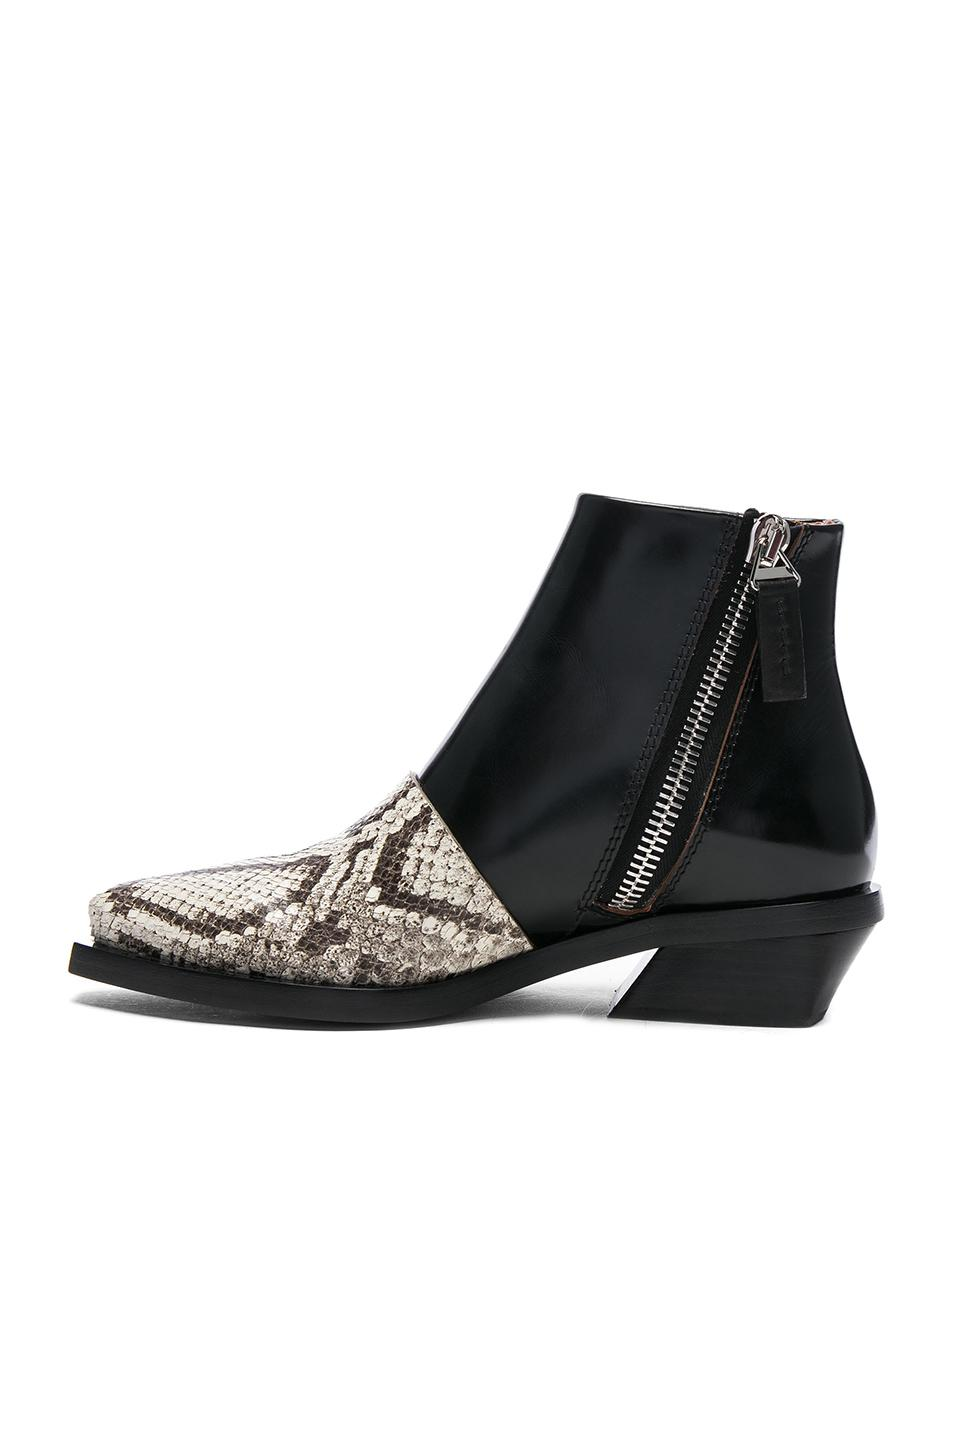 free shipping for sale Proenza Schouler Embossed Leather Wedge Booties sale order online cheap quality discount amazon Manchester sale online q7m9X58